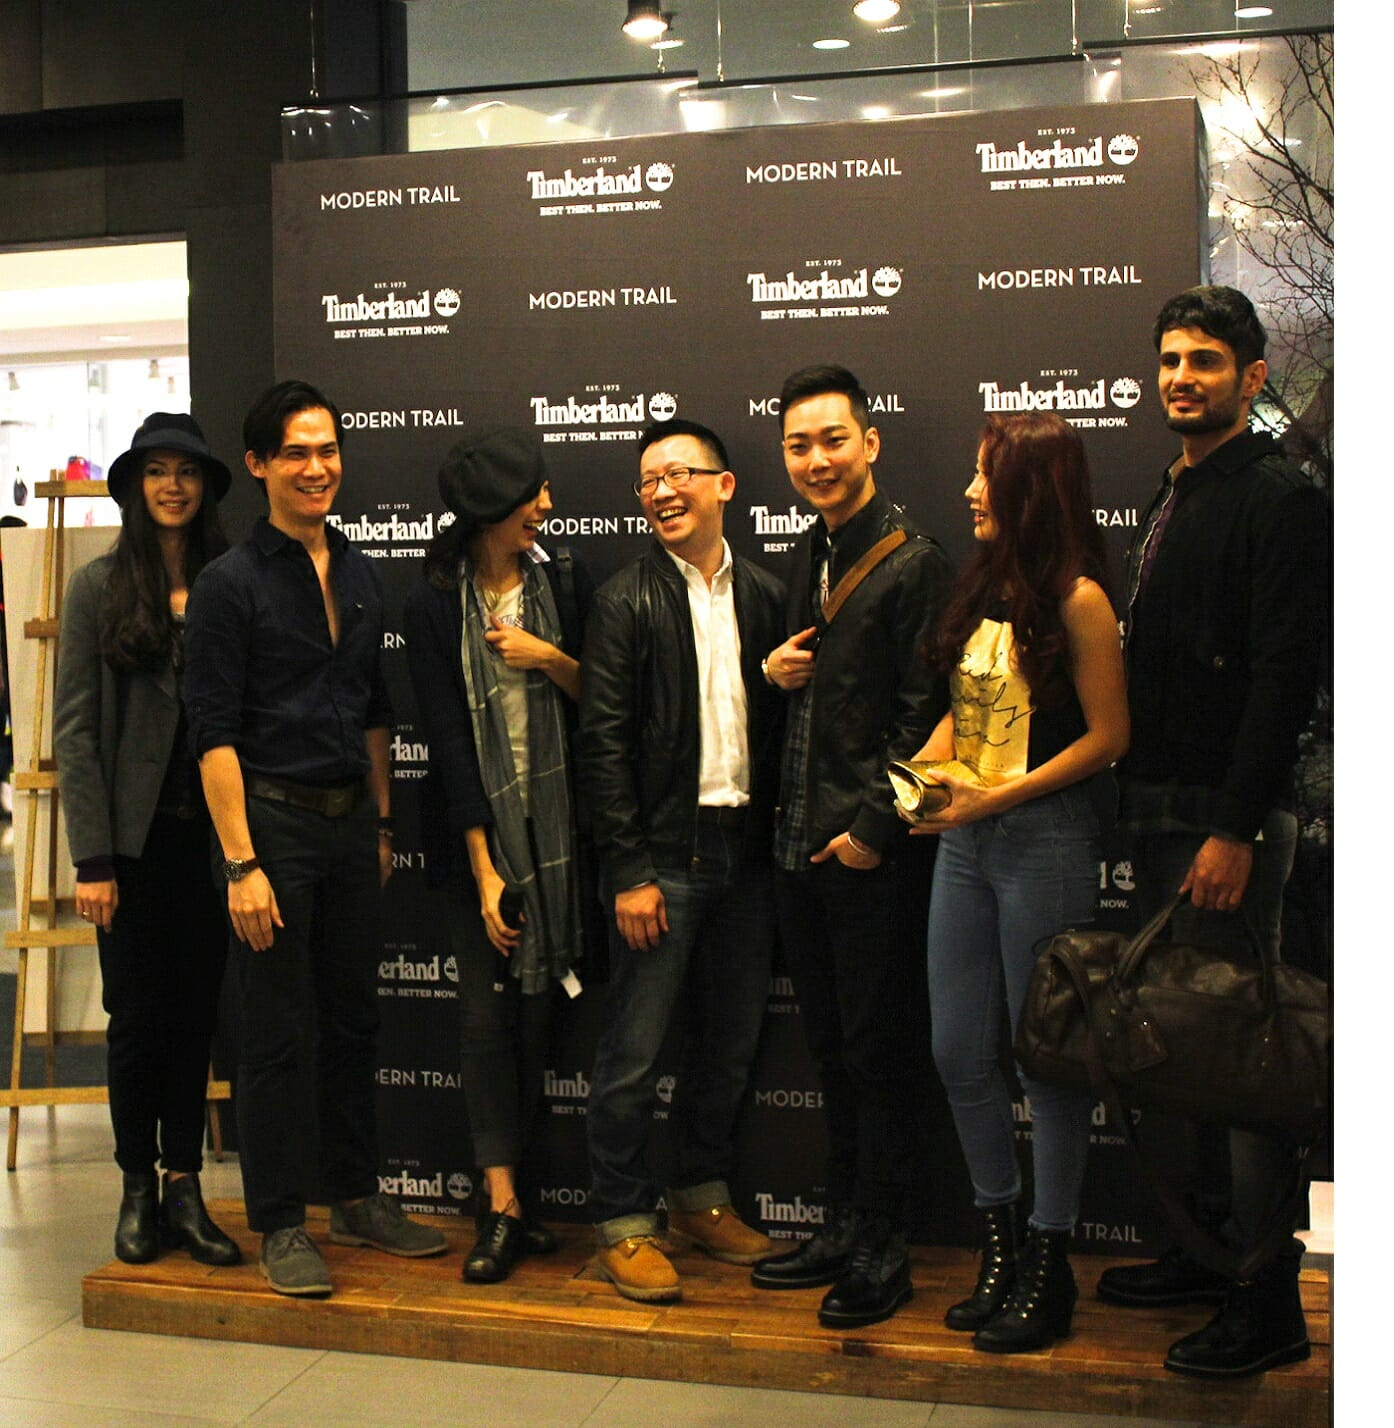 All the happy people in their brand new Timberland gear!